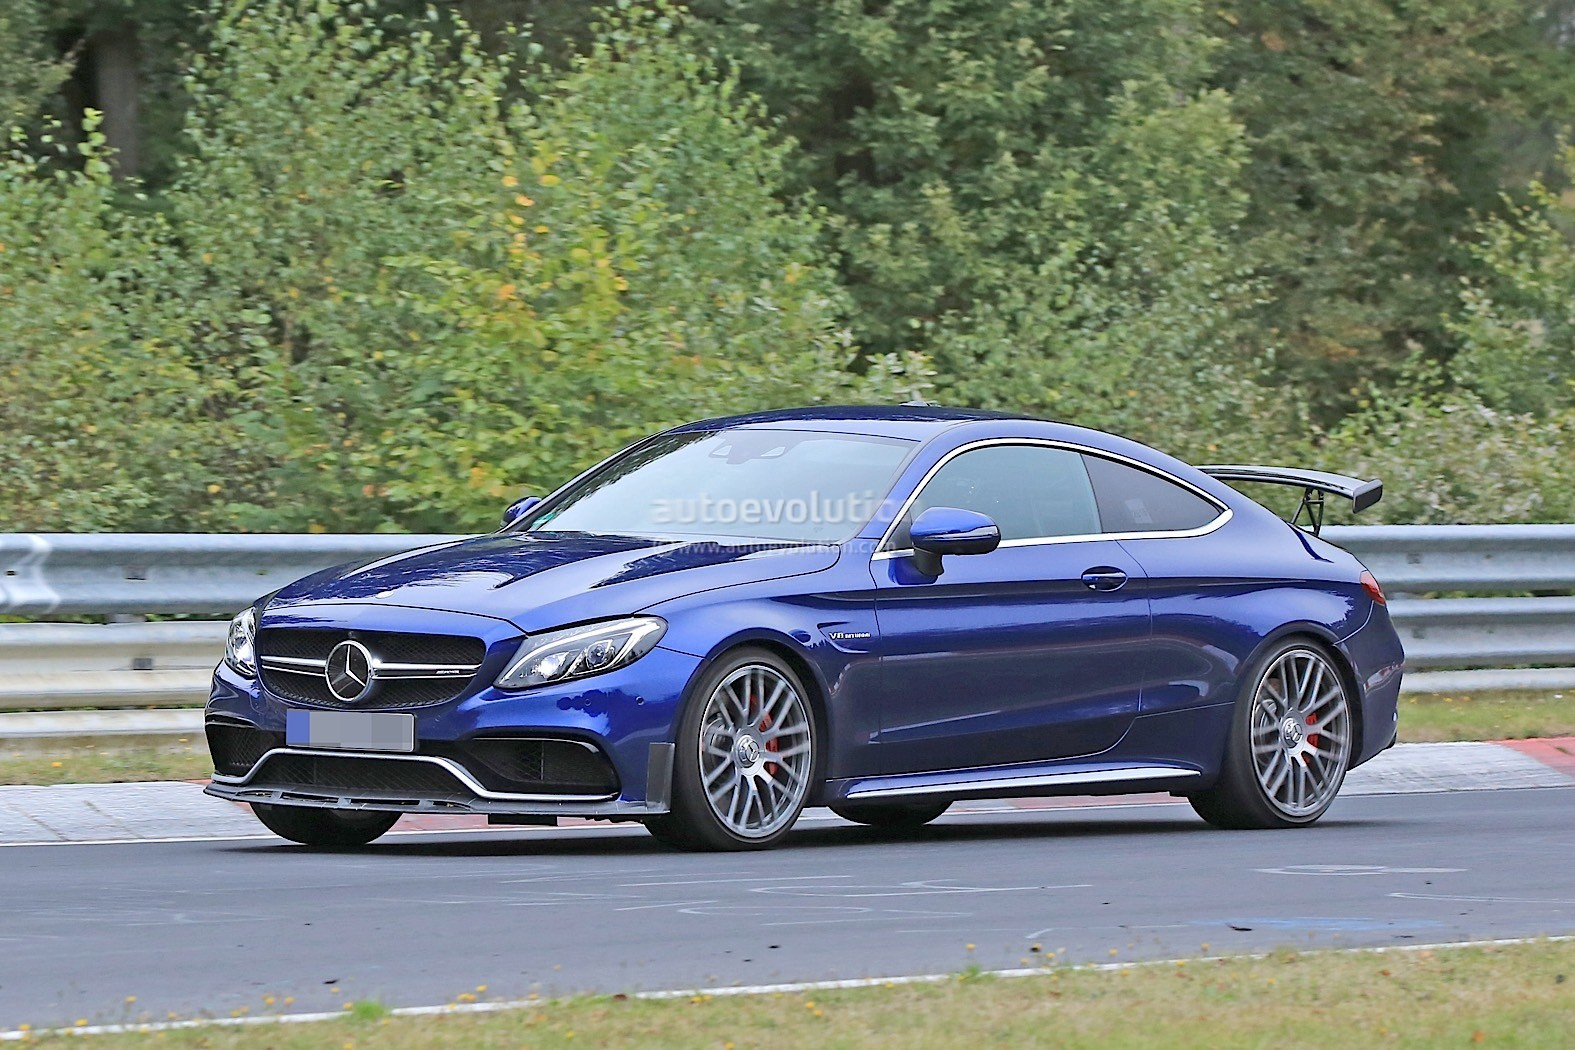 Spy Shots Of What Could Be A Mercedes Amg C63 R Coupe Have Surfaced